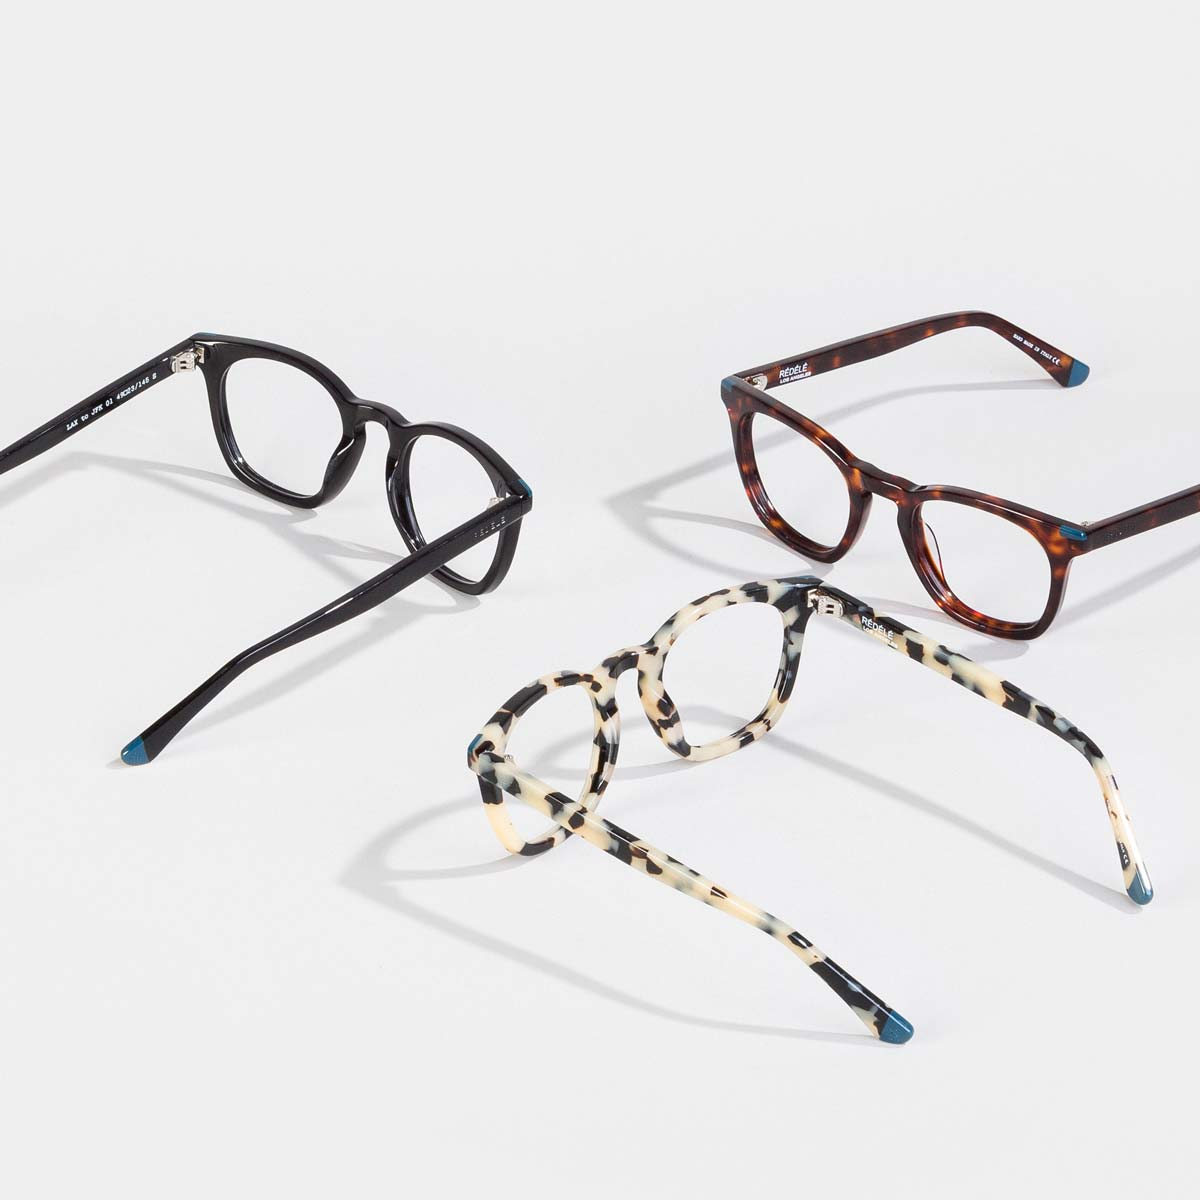 Rédélé | Made in Italy eyewear